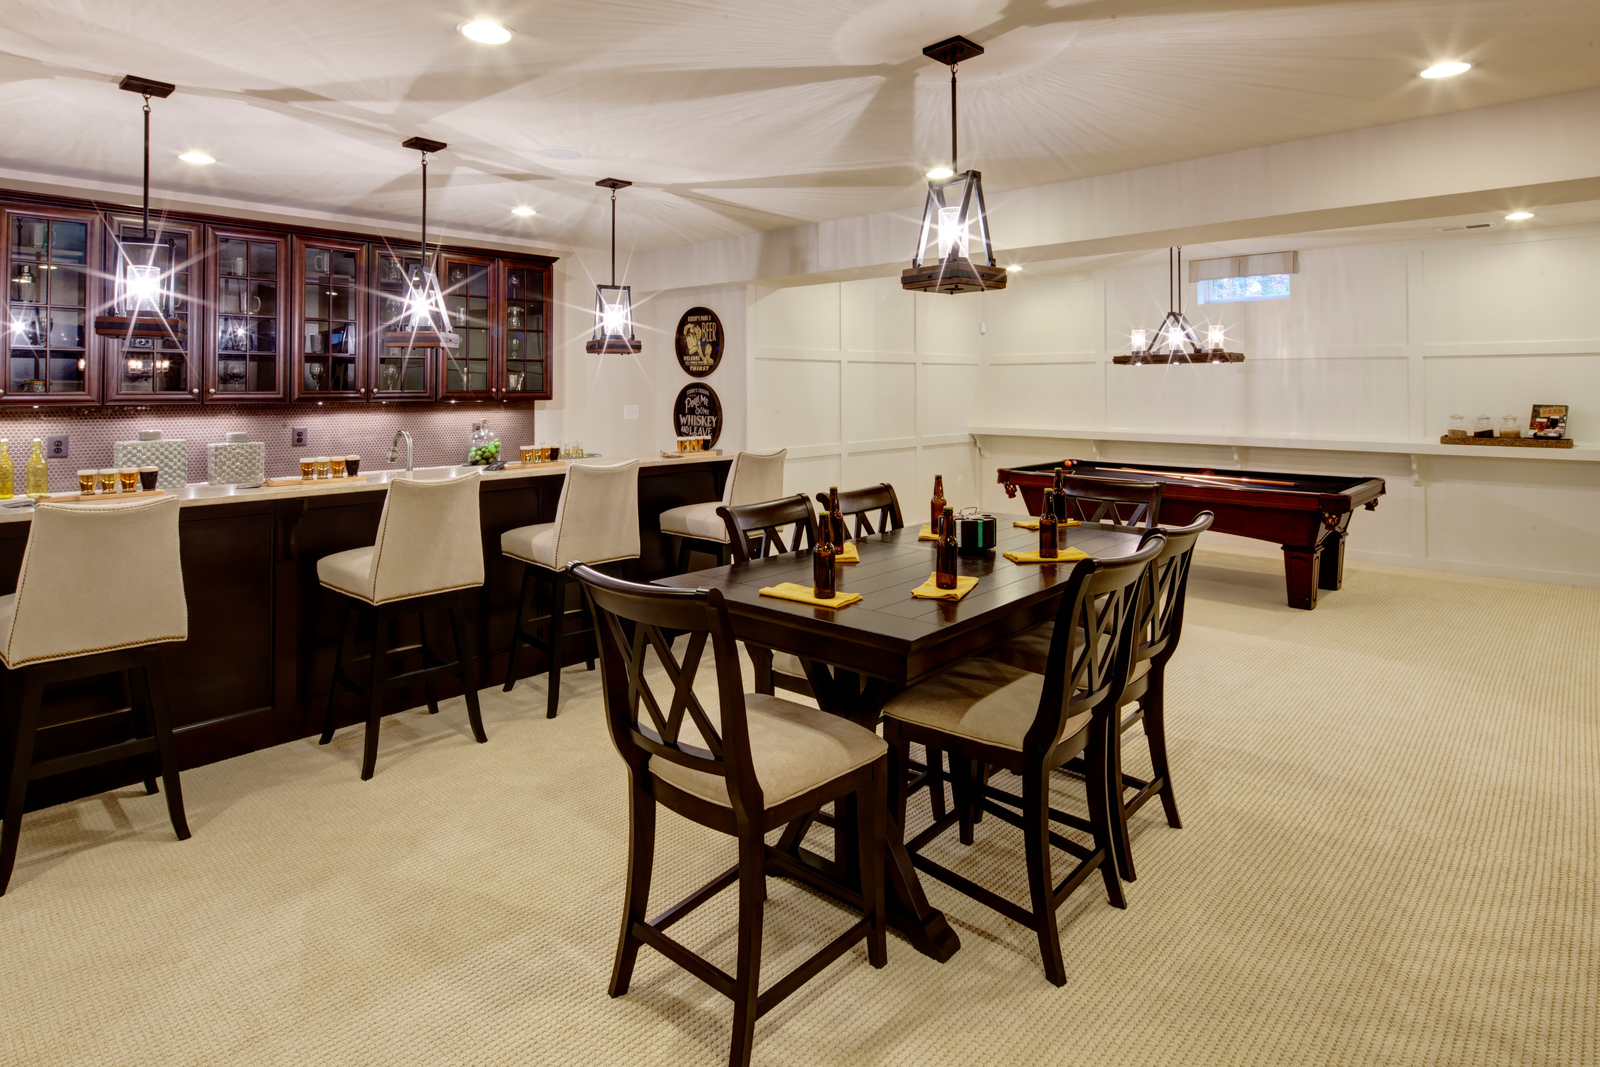 A wet bar adds to the atmosphere for the ultimate basement entertaining space!